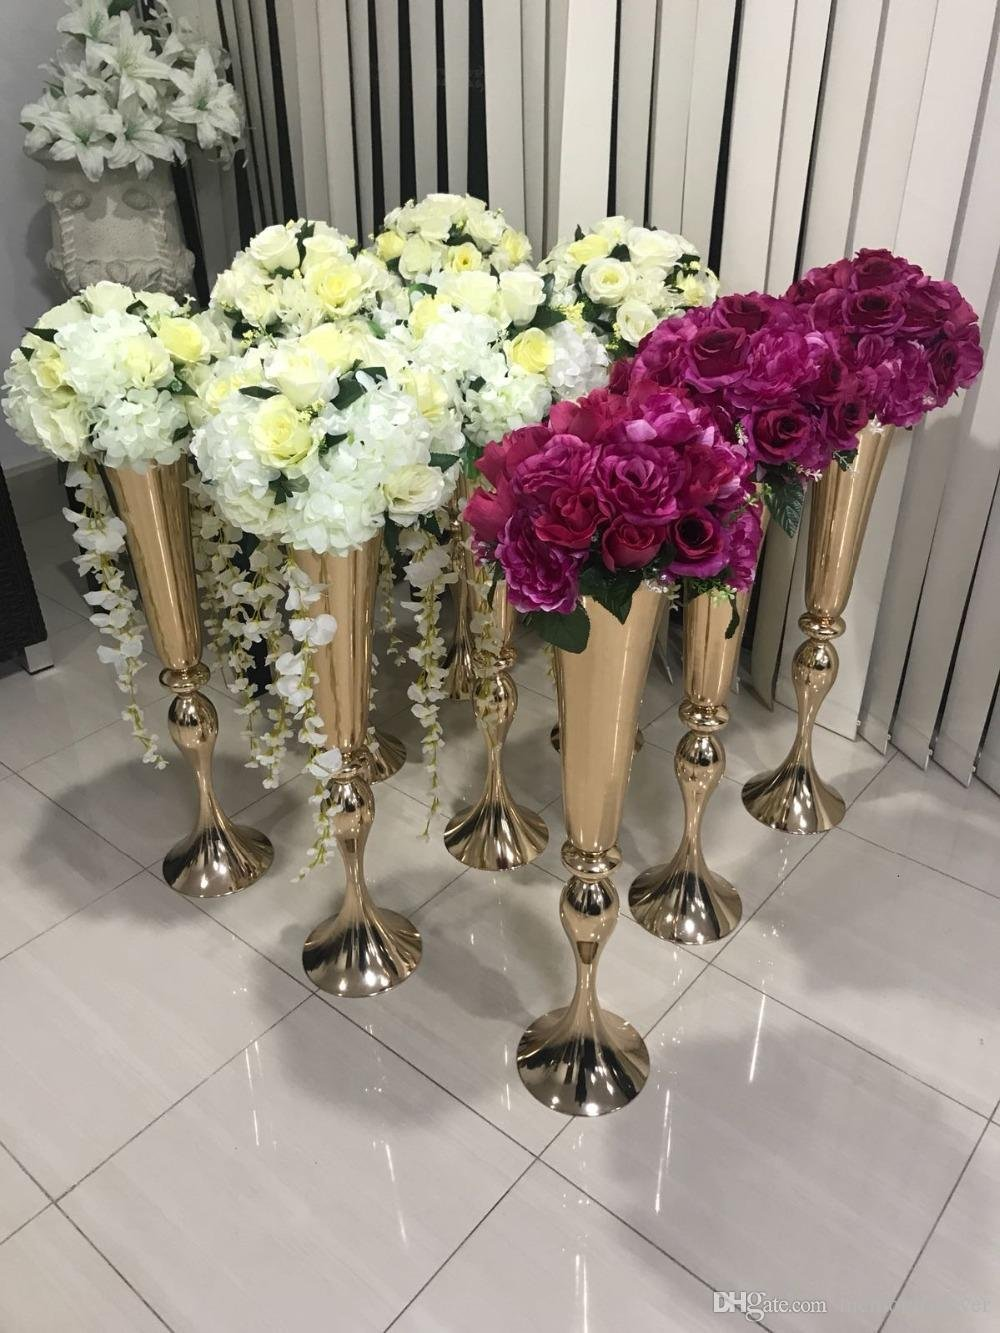 Hot Sell Shiny Gold Wedding Flower Vase 75 Cm Tall Table Dining Room Table Centerpieces Ideas